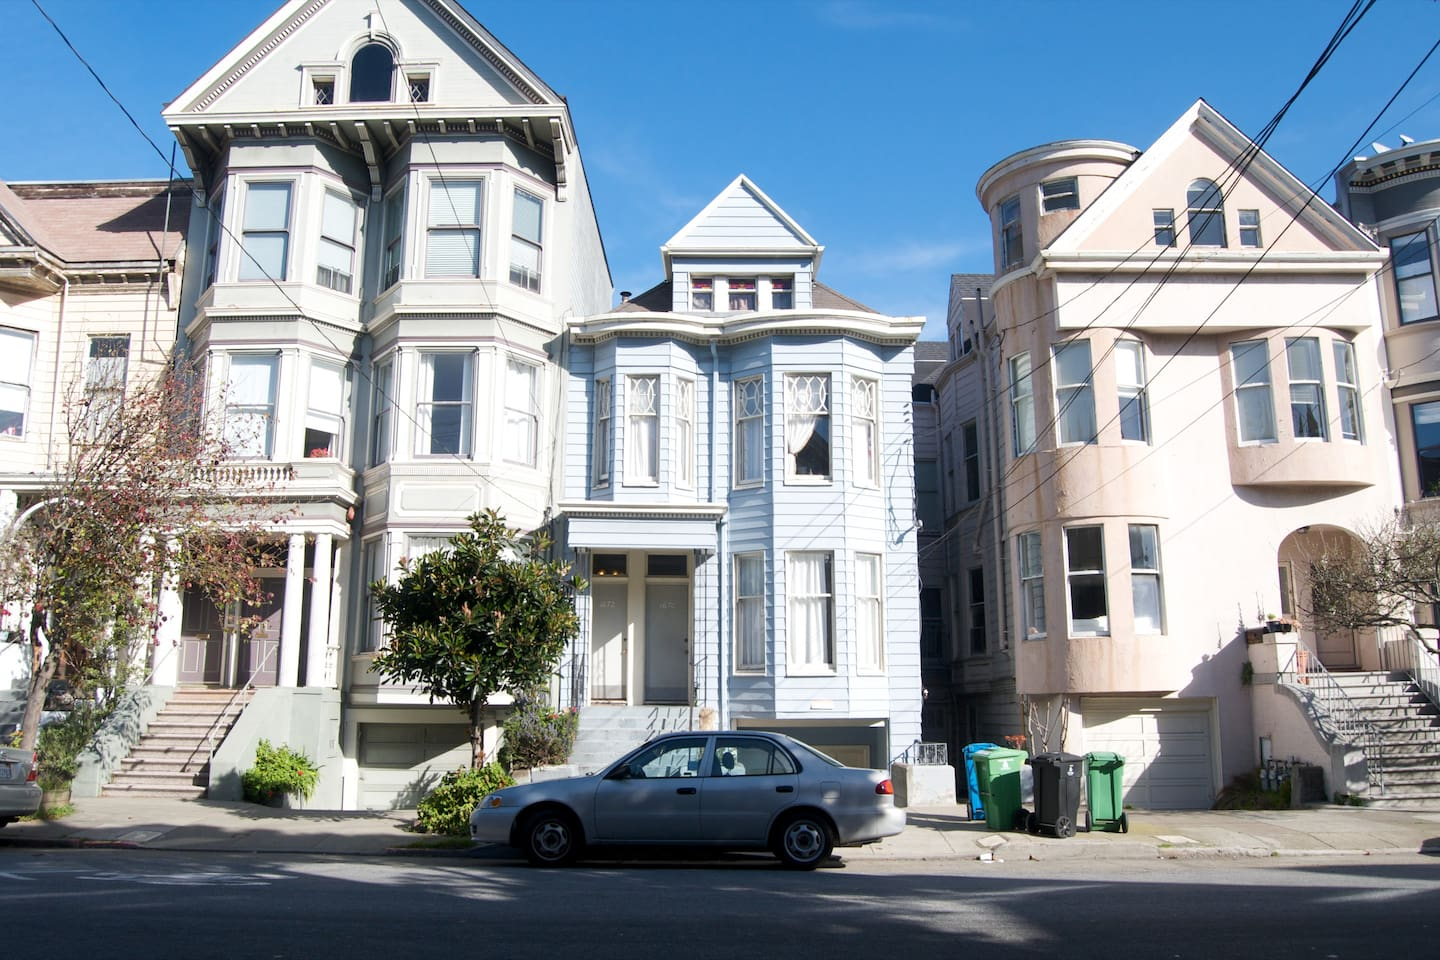 Taking center stage is this classic 1907 San Francisco Victorian building (center, blue house).